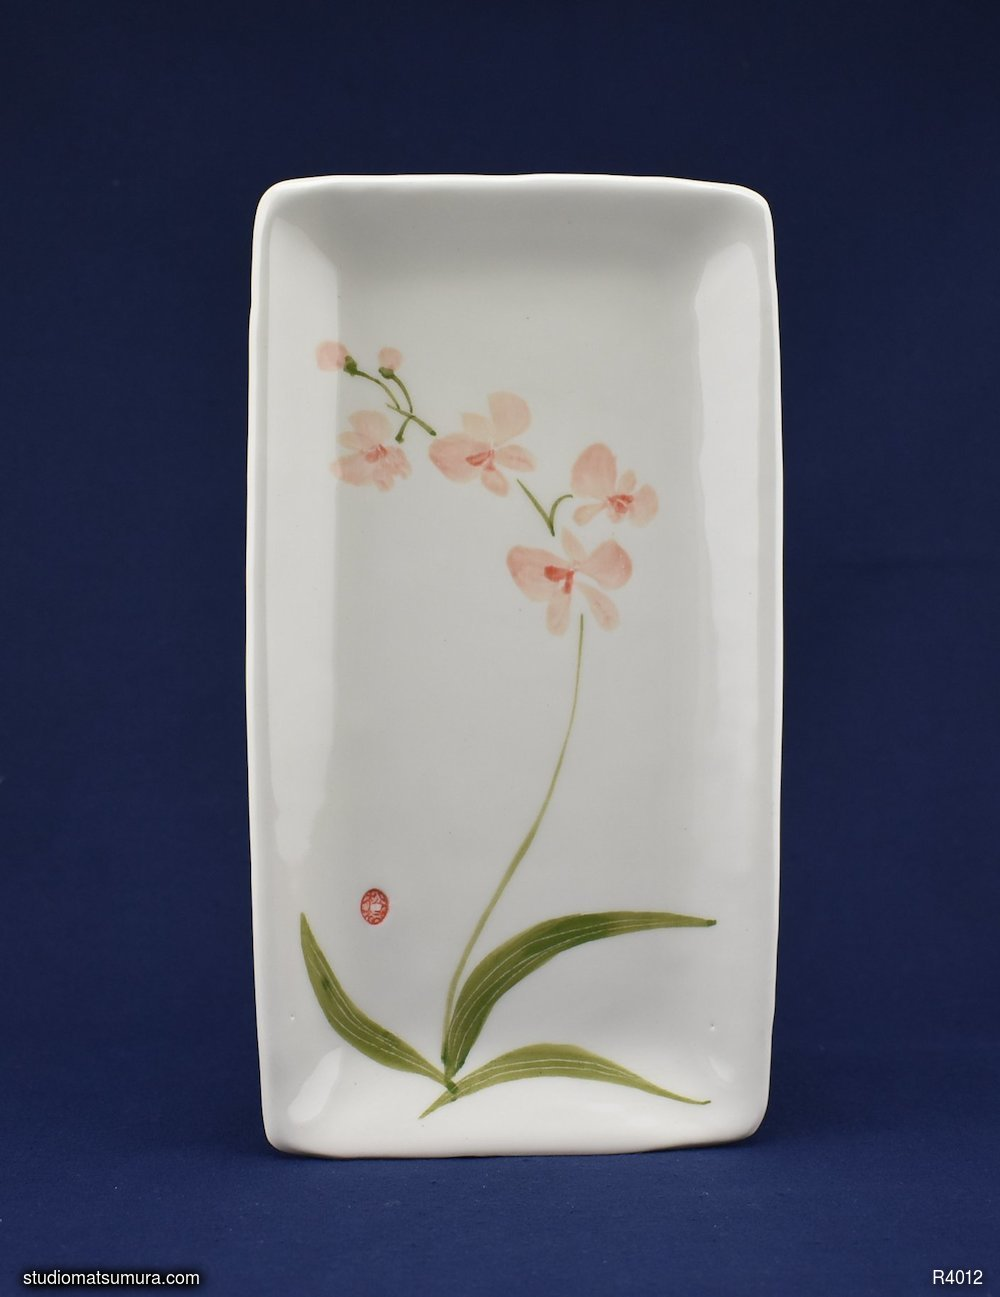 Handmade dinnerware with Sumi-e drawings of a Pink Orchid